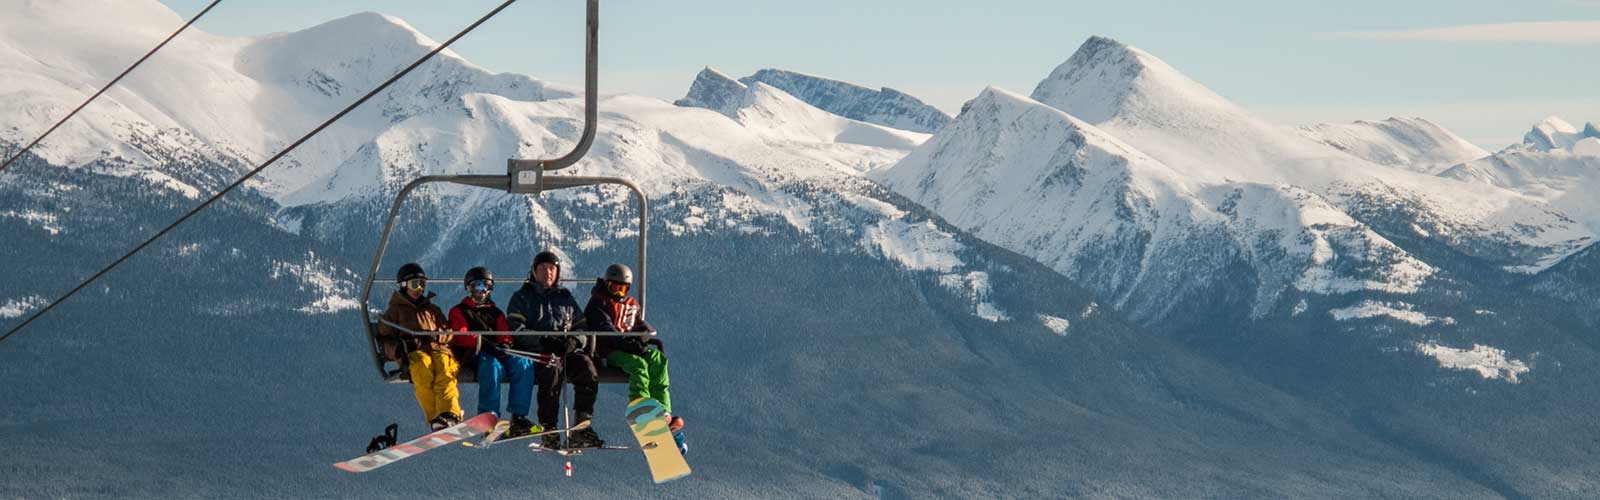 Marmot Basin opens with smiles